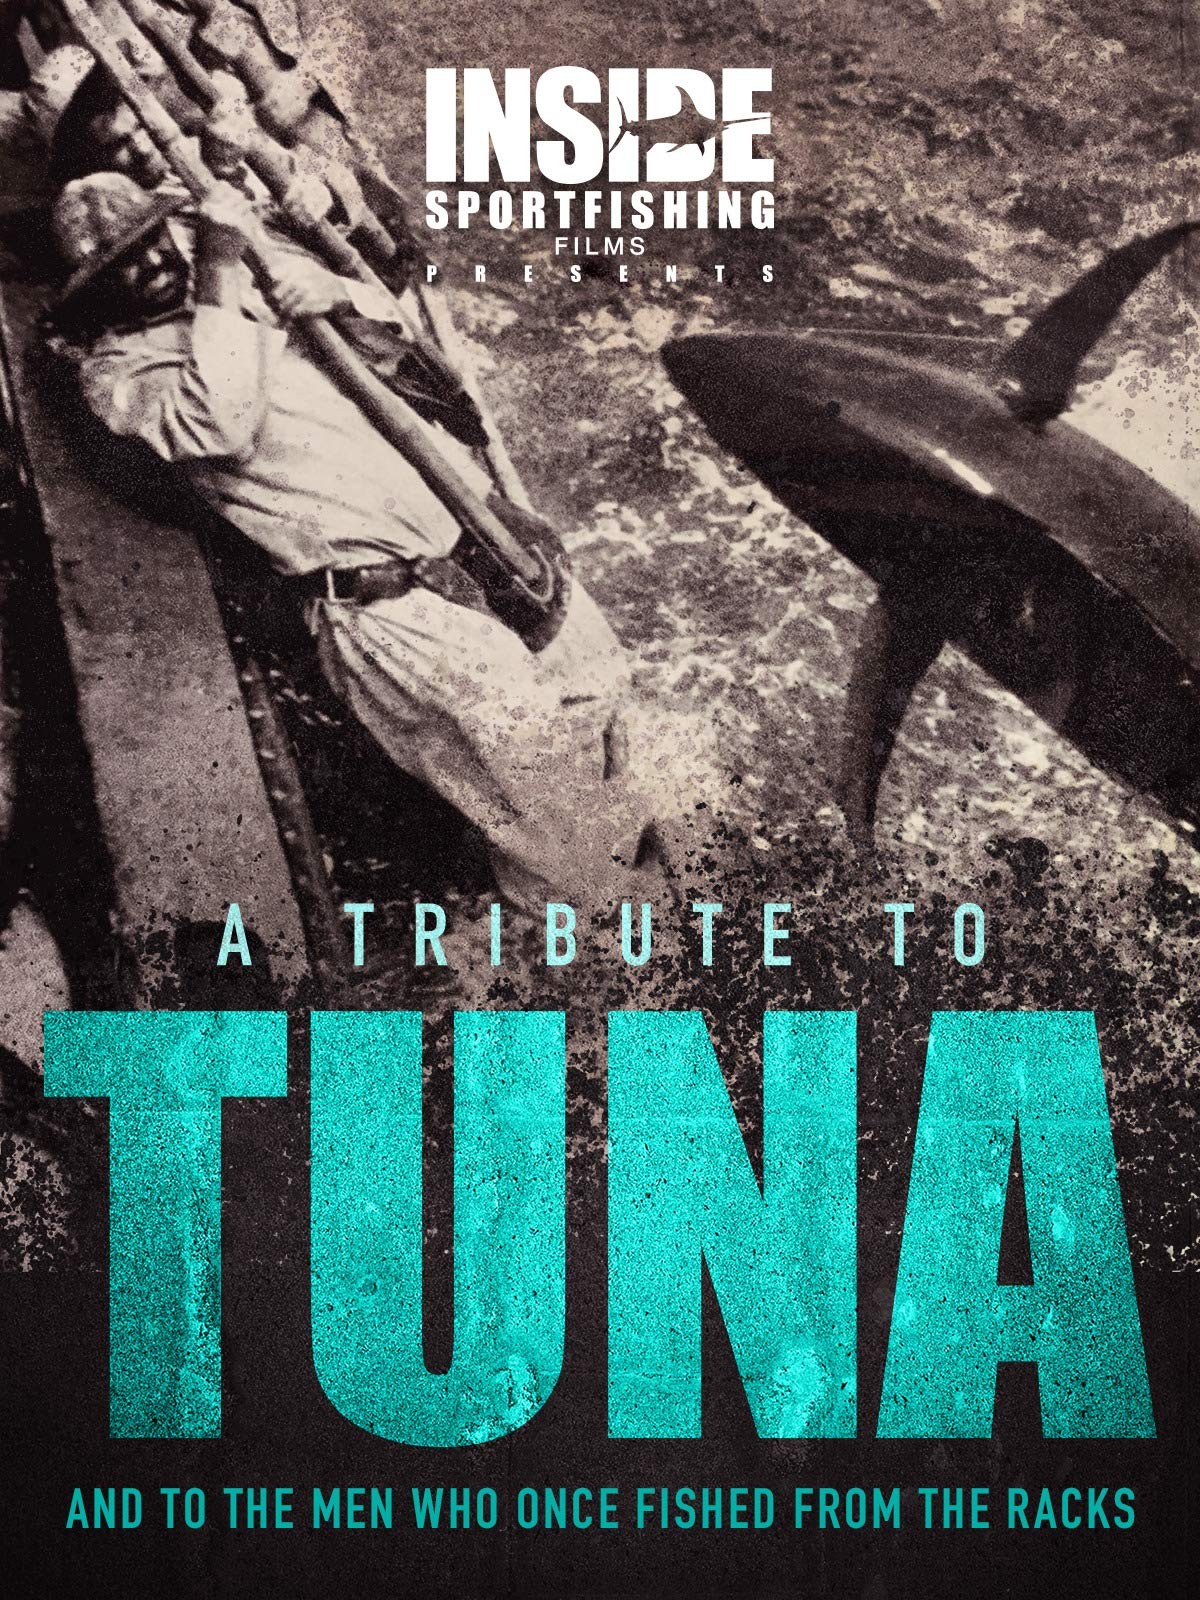 A Tribute to Tuna- And to the Men Who Once Fished From the Racks